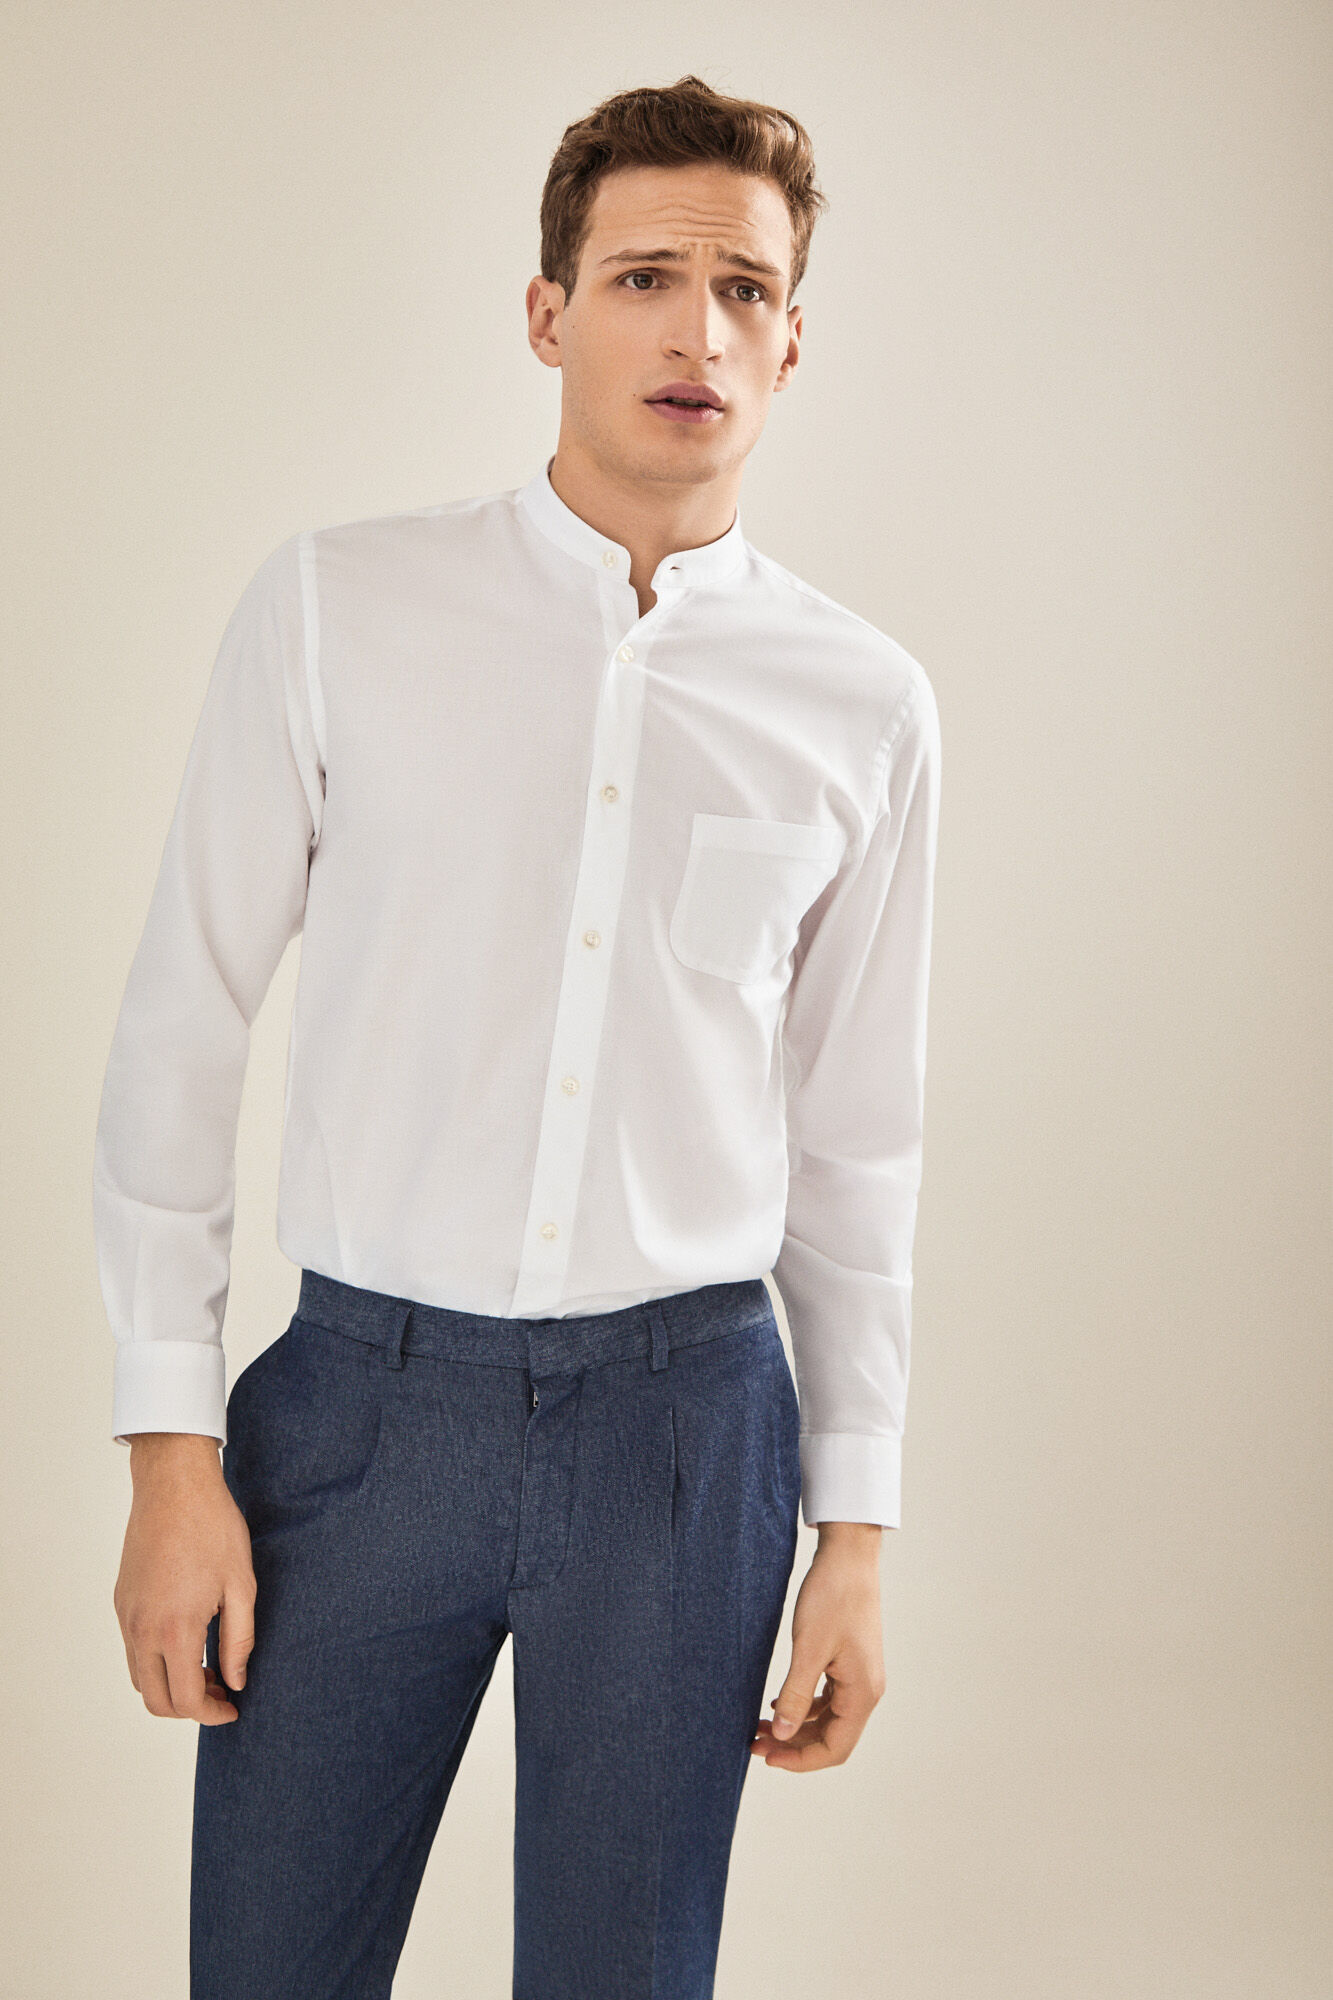 17f54fdb378 Plain Mandarin collar shirt